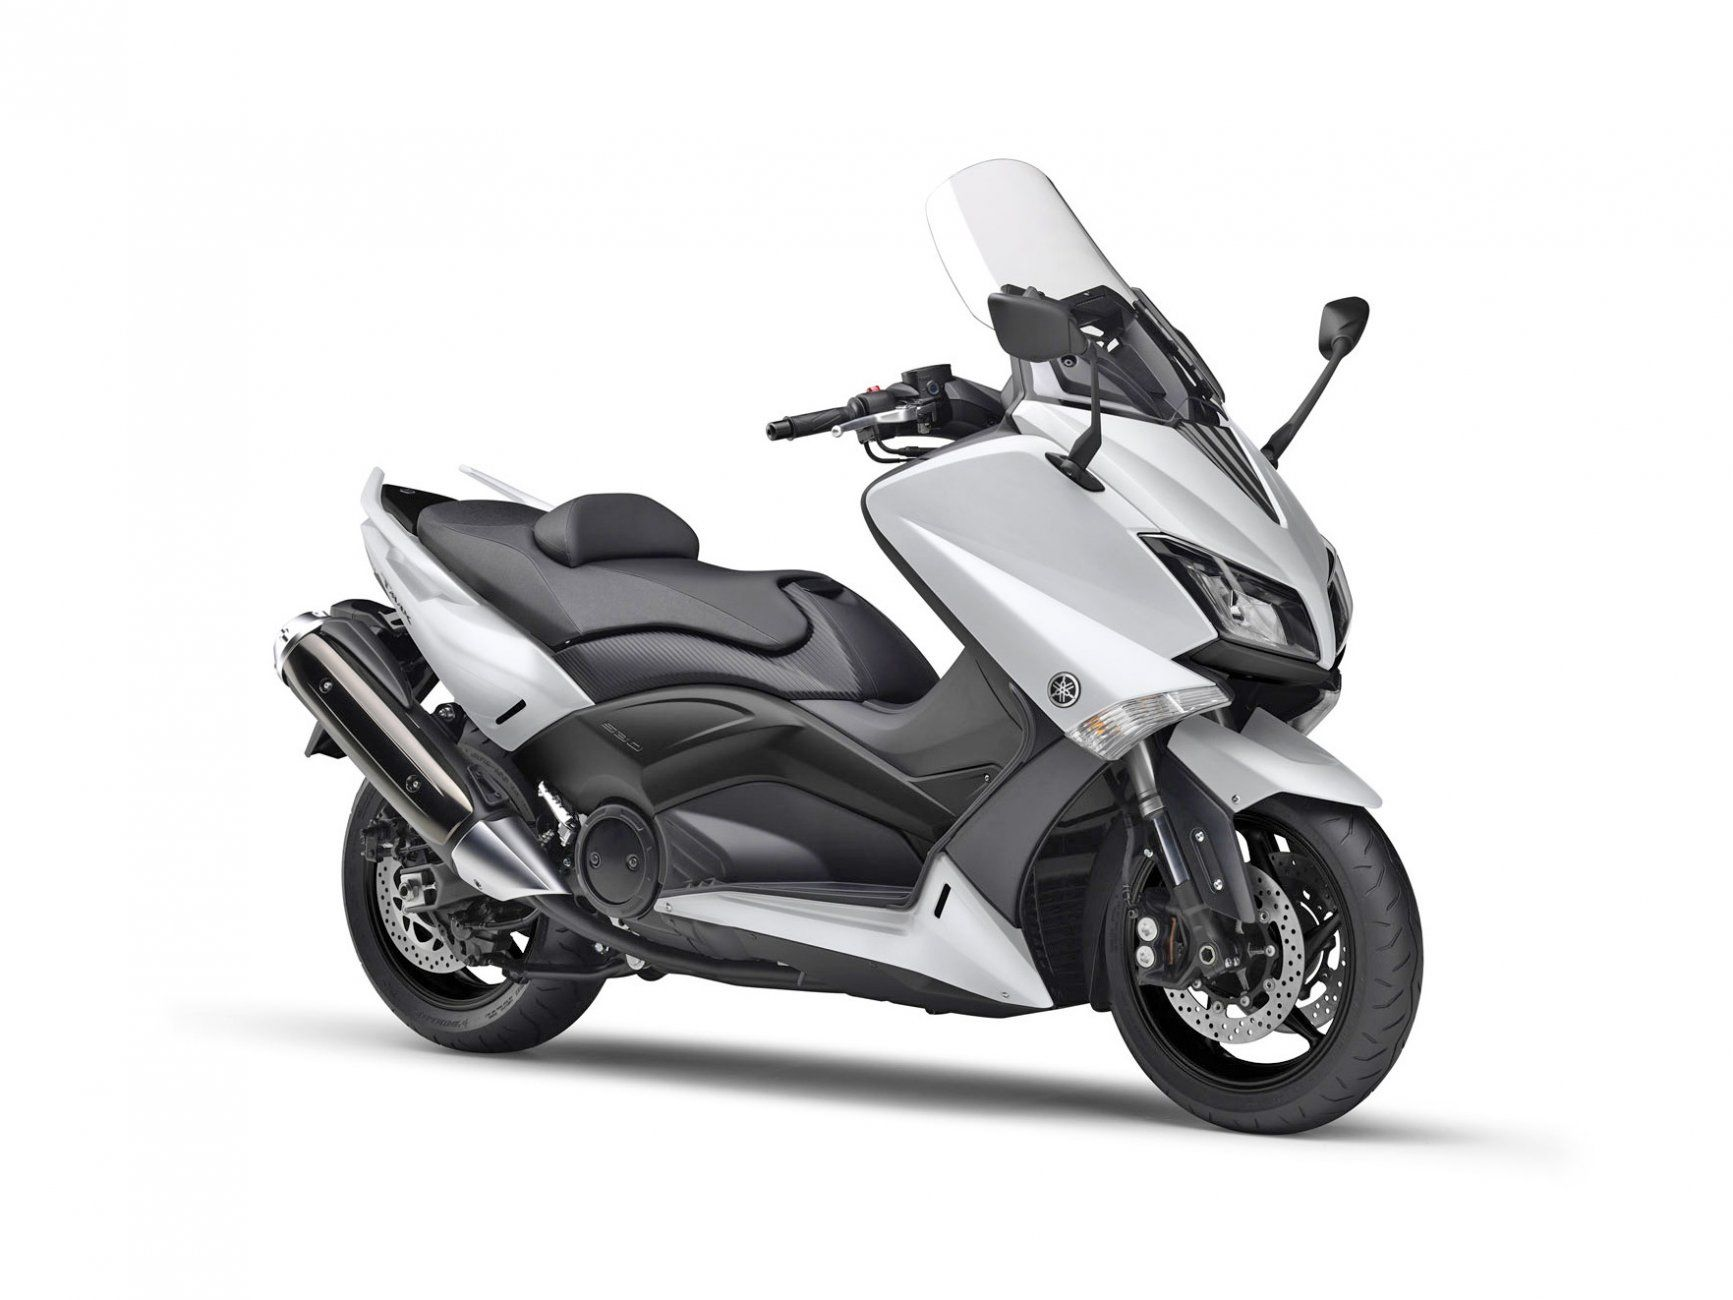 Scooter dynamique yamaha 125 xmax avec abs moto scooter for Einbauküche m max